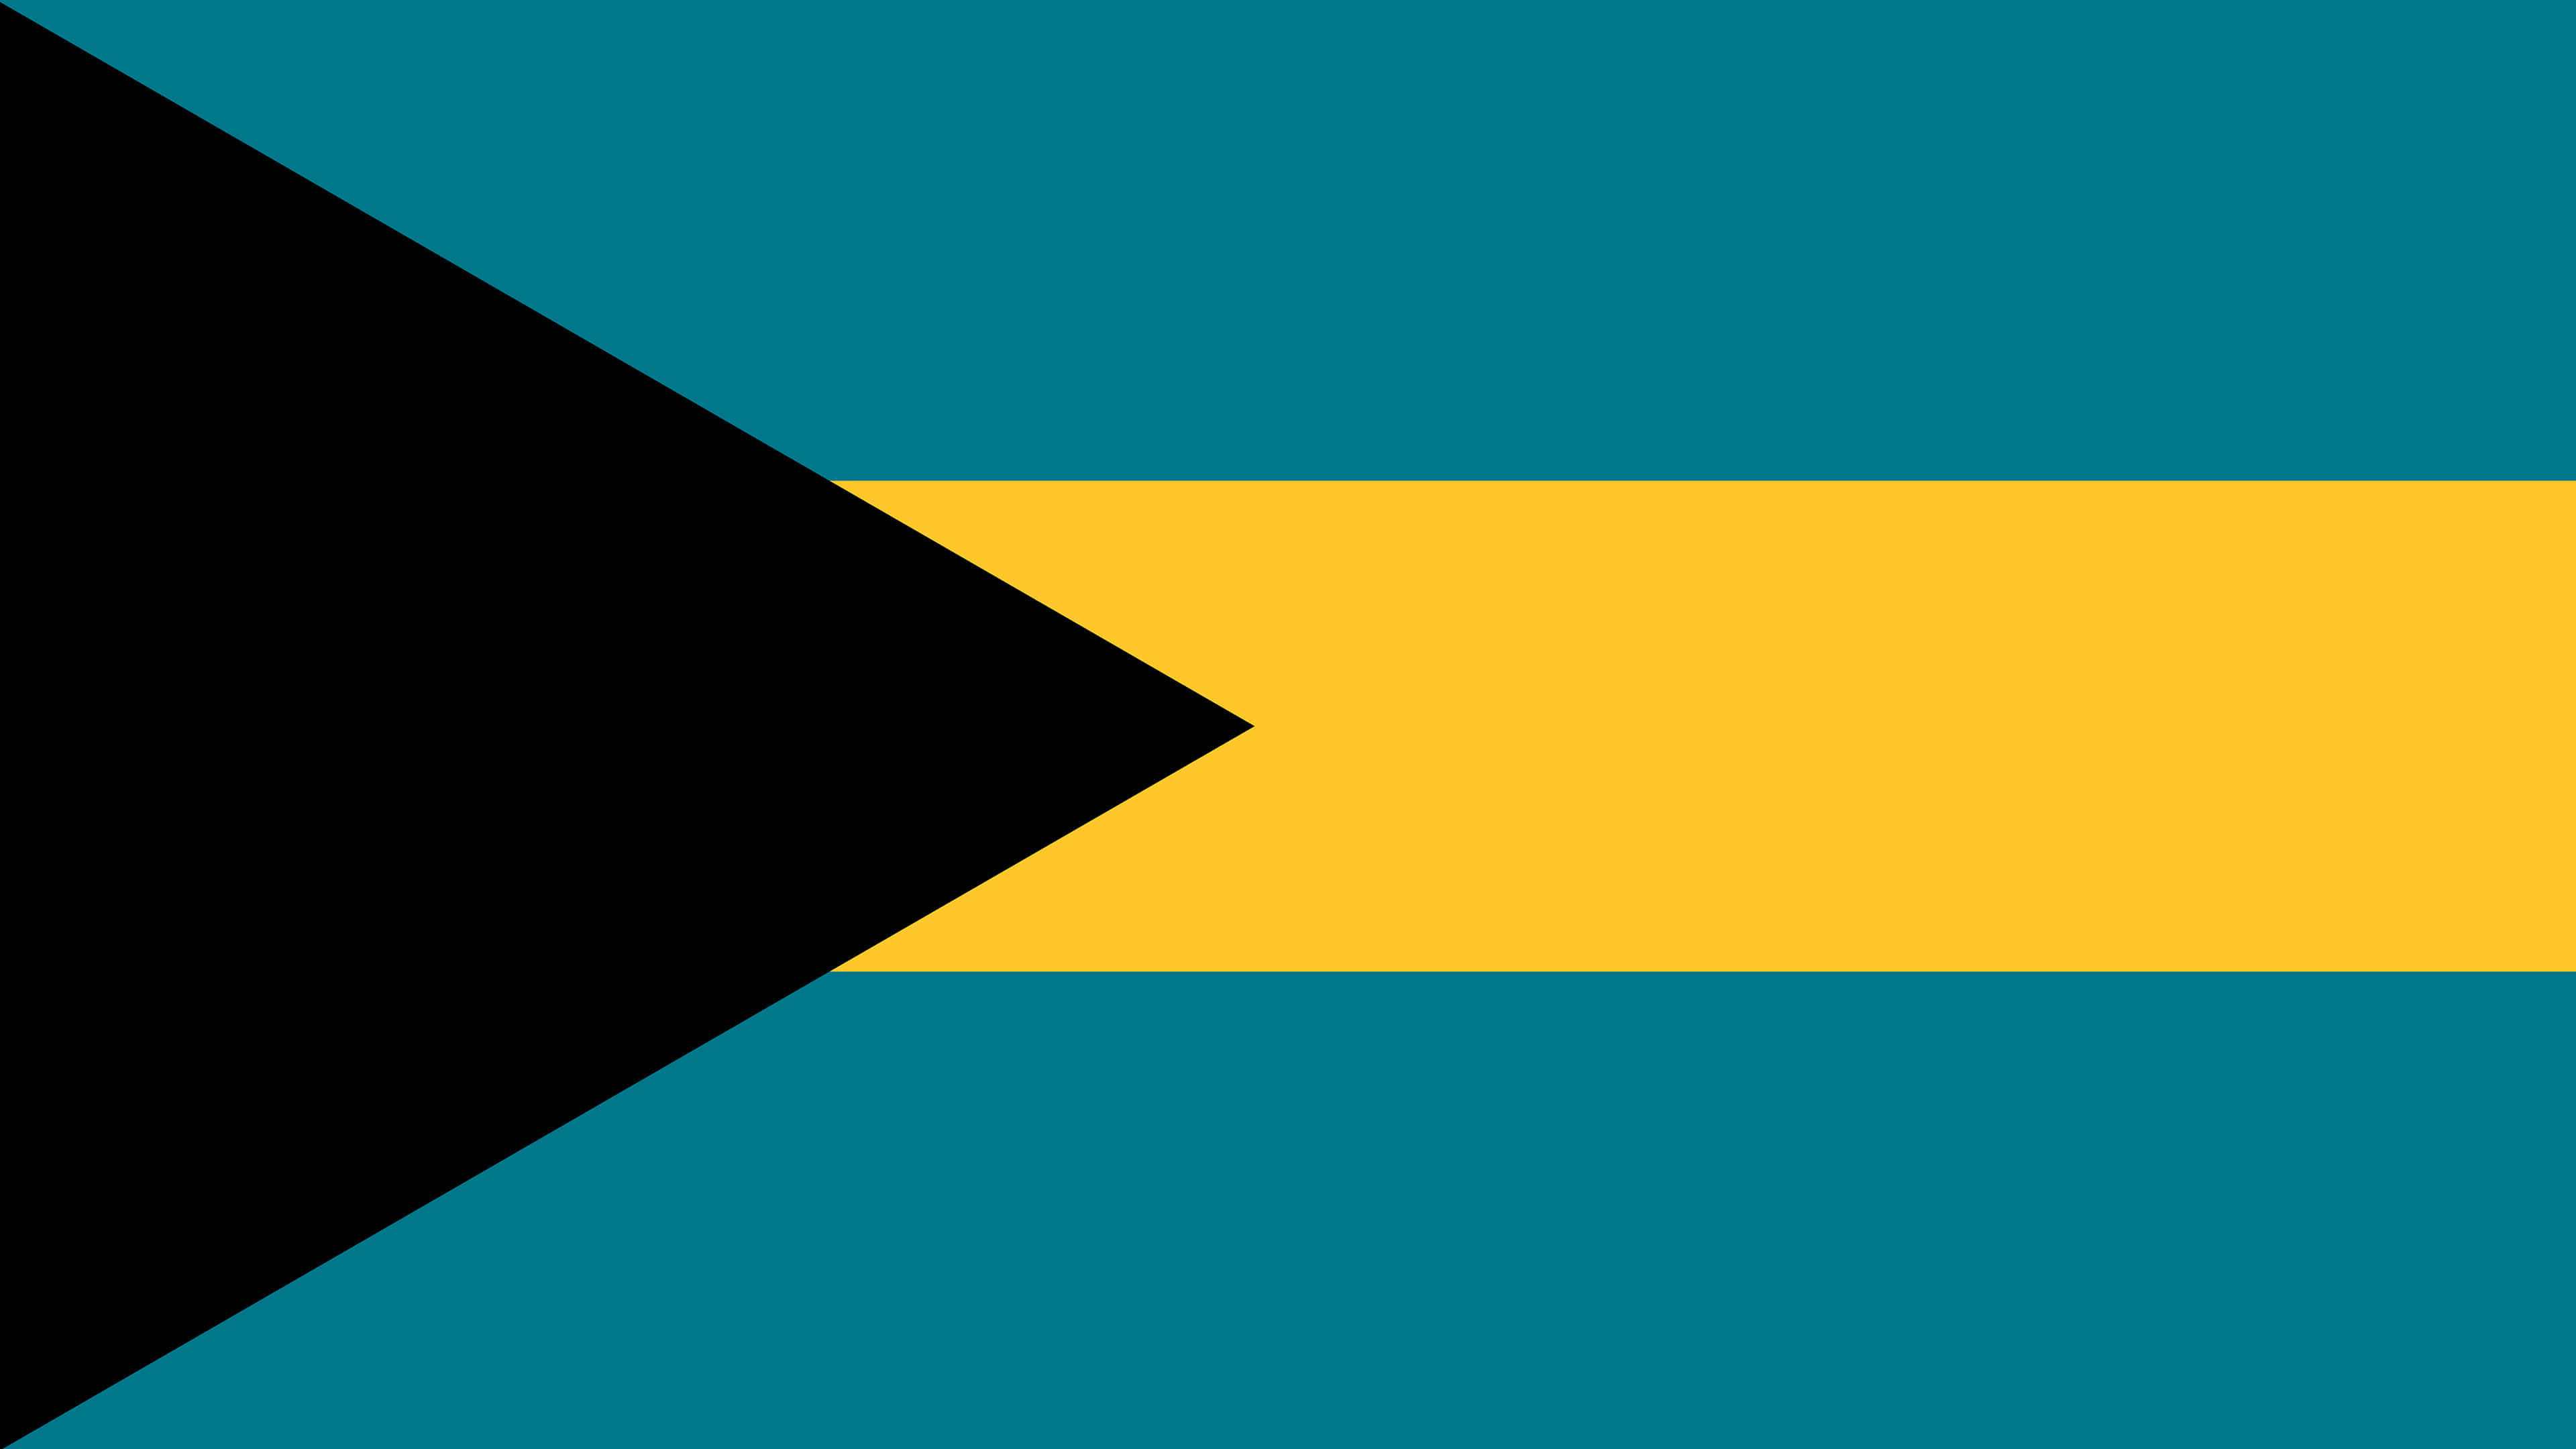 bahamas flag uhd 4k wallpaper